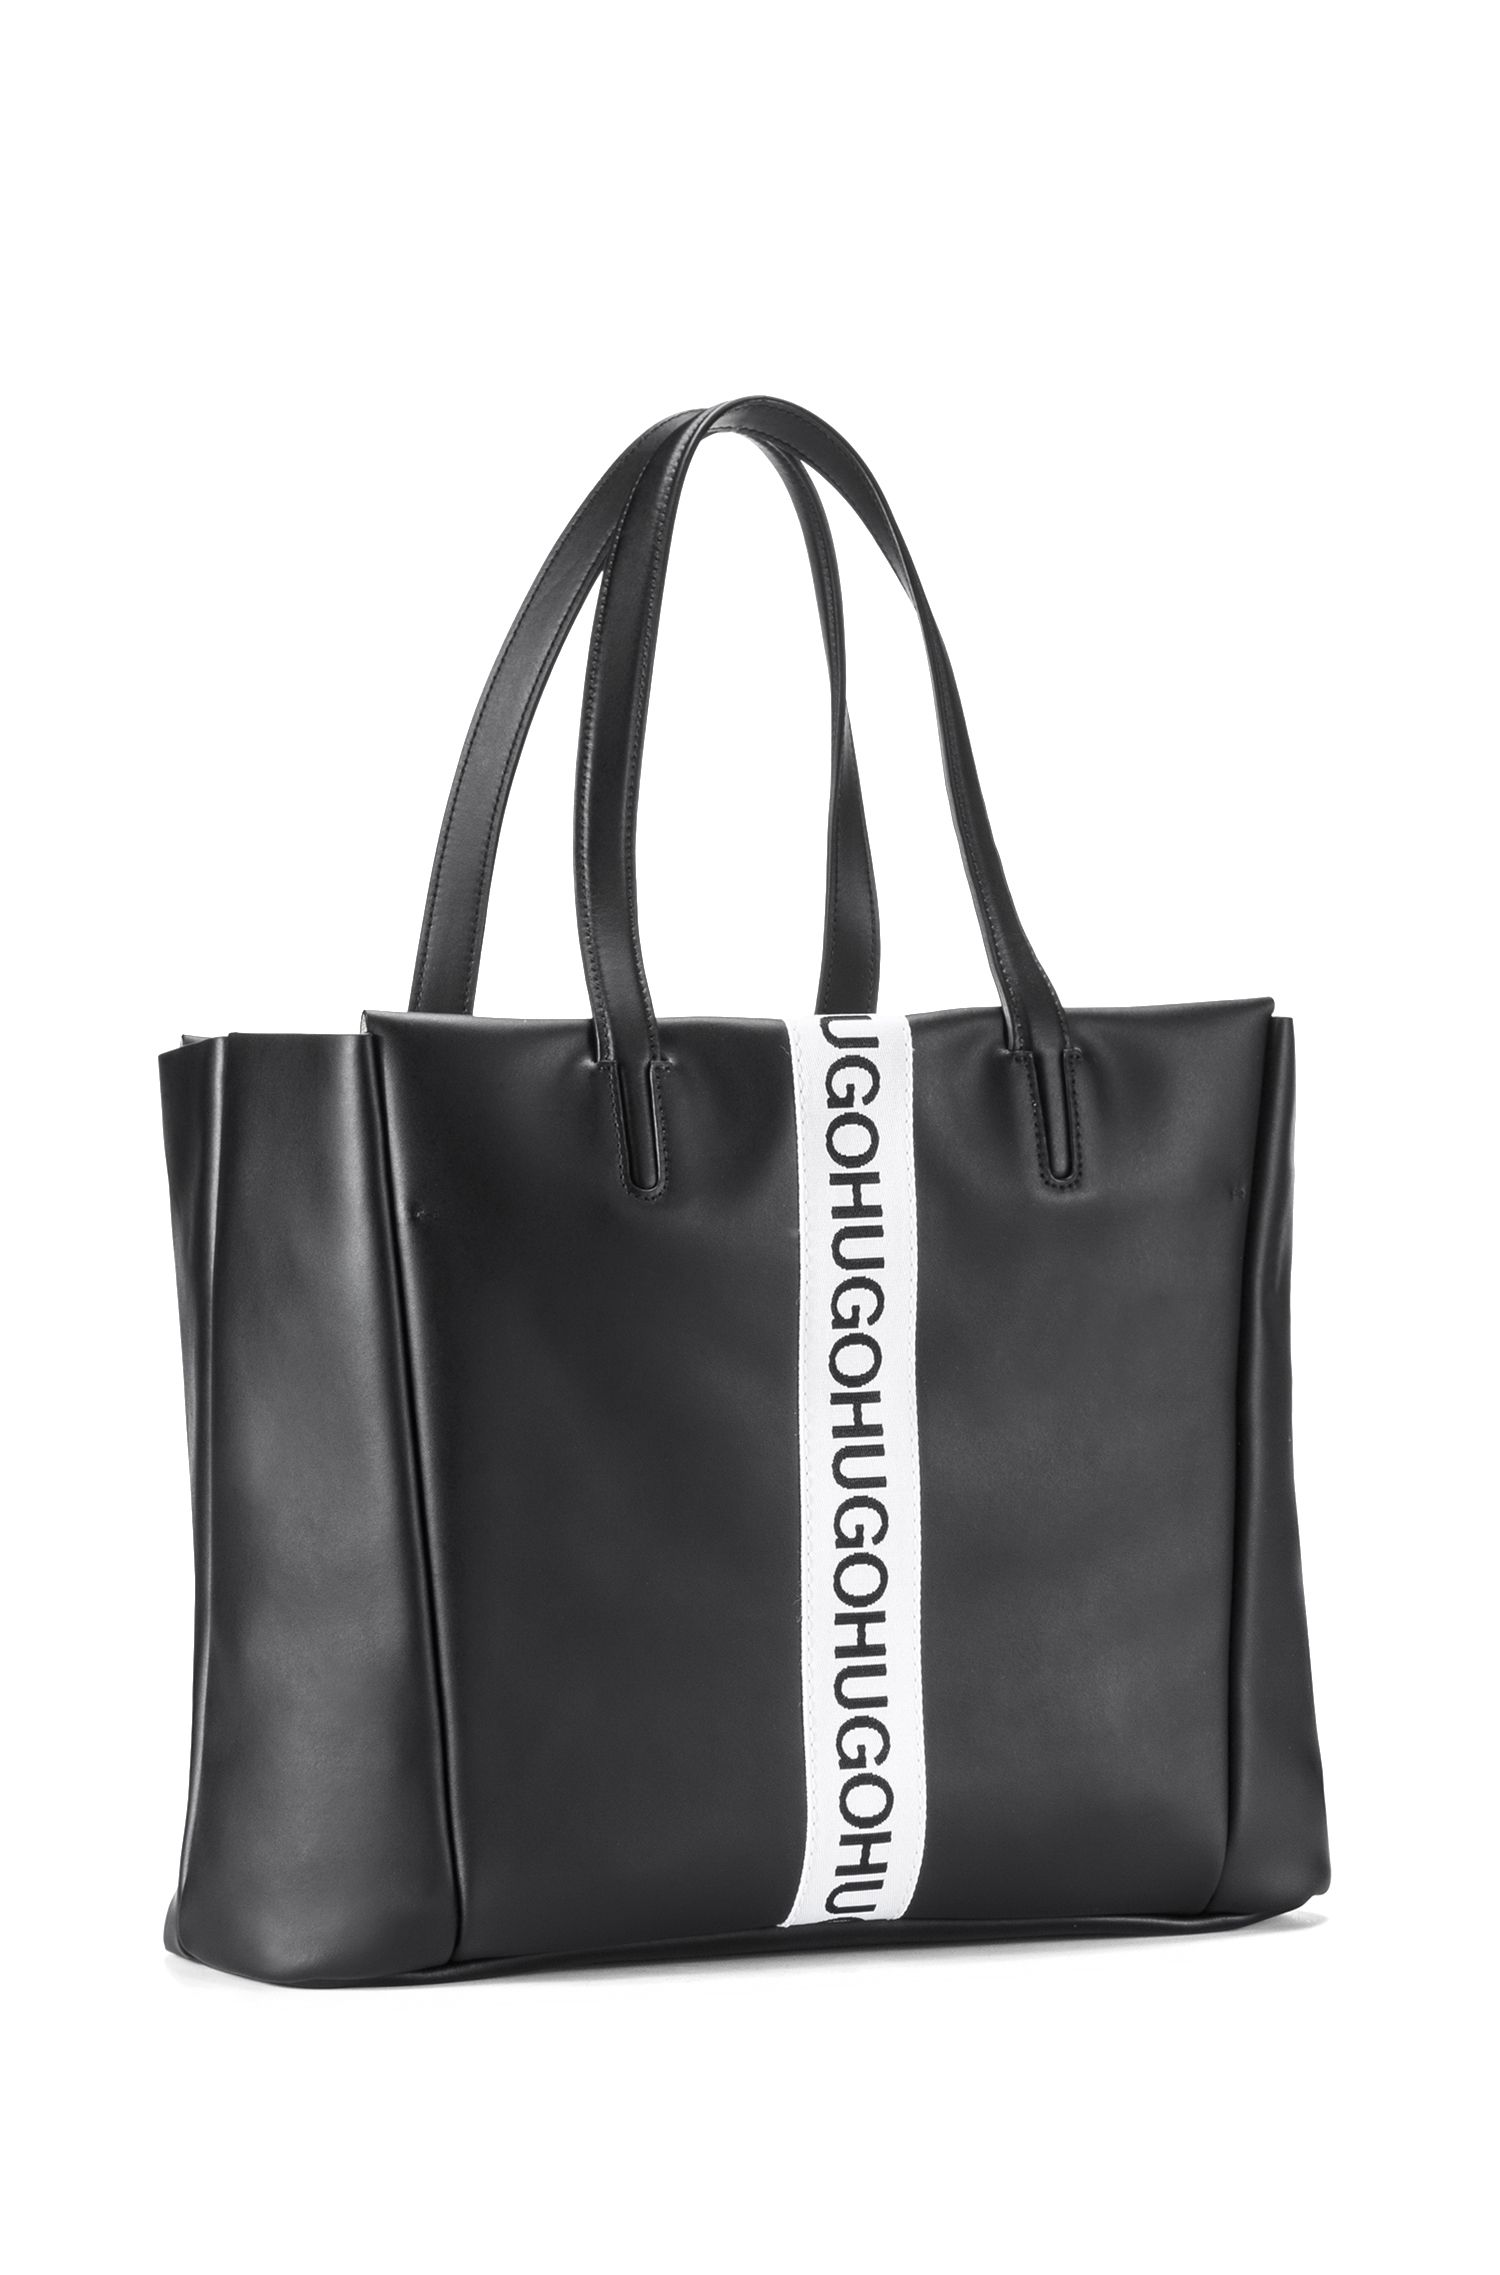 Small leather tote bag with logo stripe